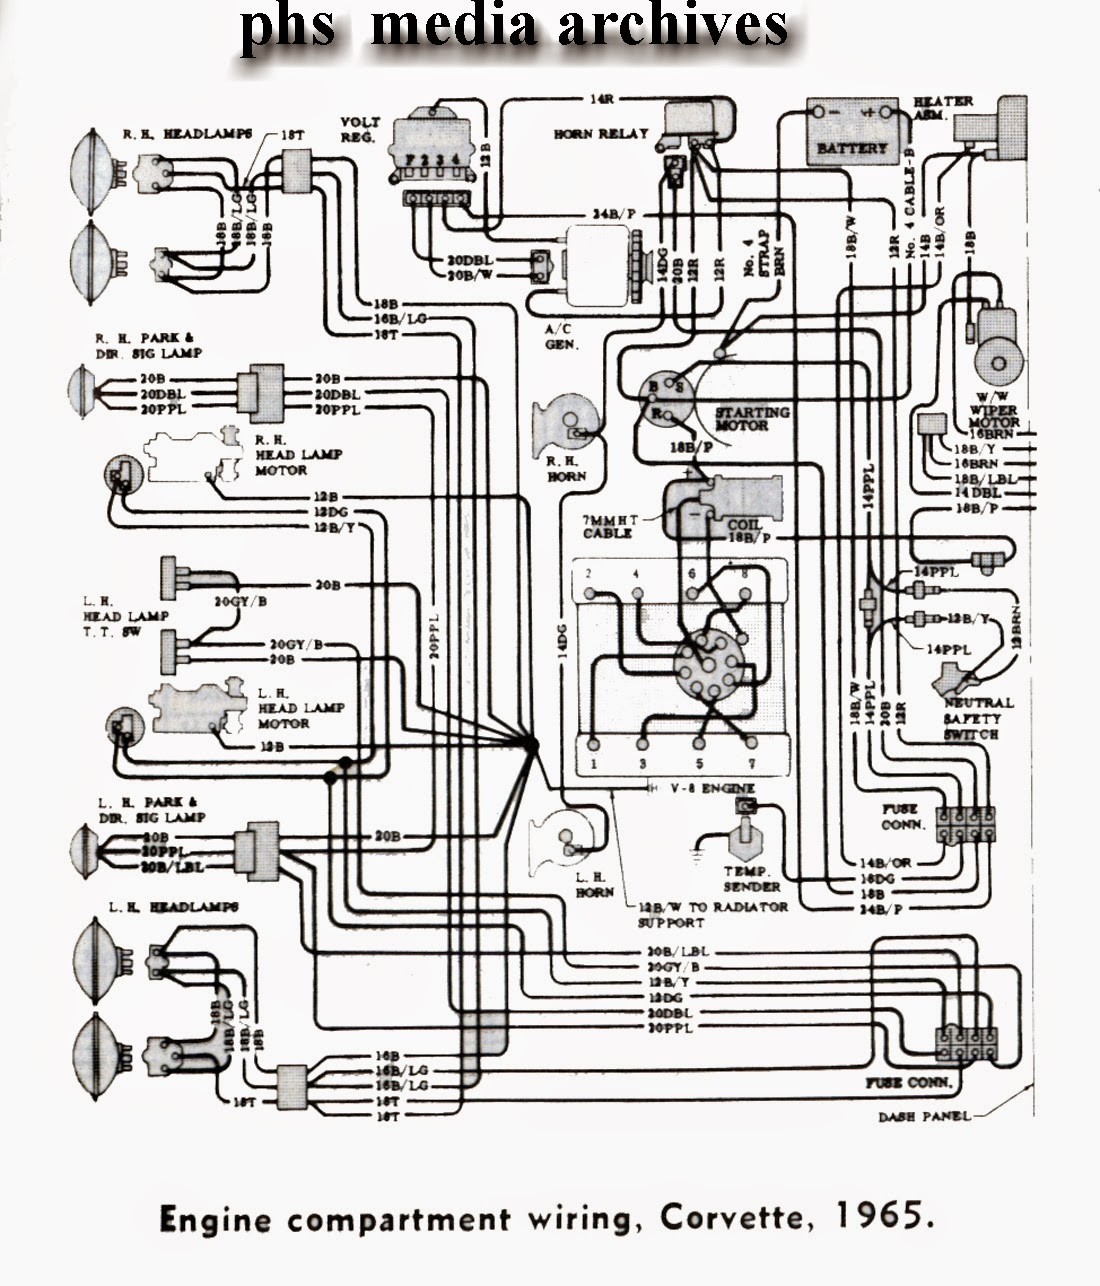 small resolution of 1967 pontiac fuse box diagram wiring schematic all wiring diagramwrg 6242 1967 pontiac fuse box